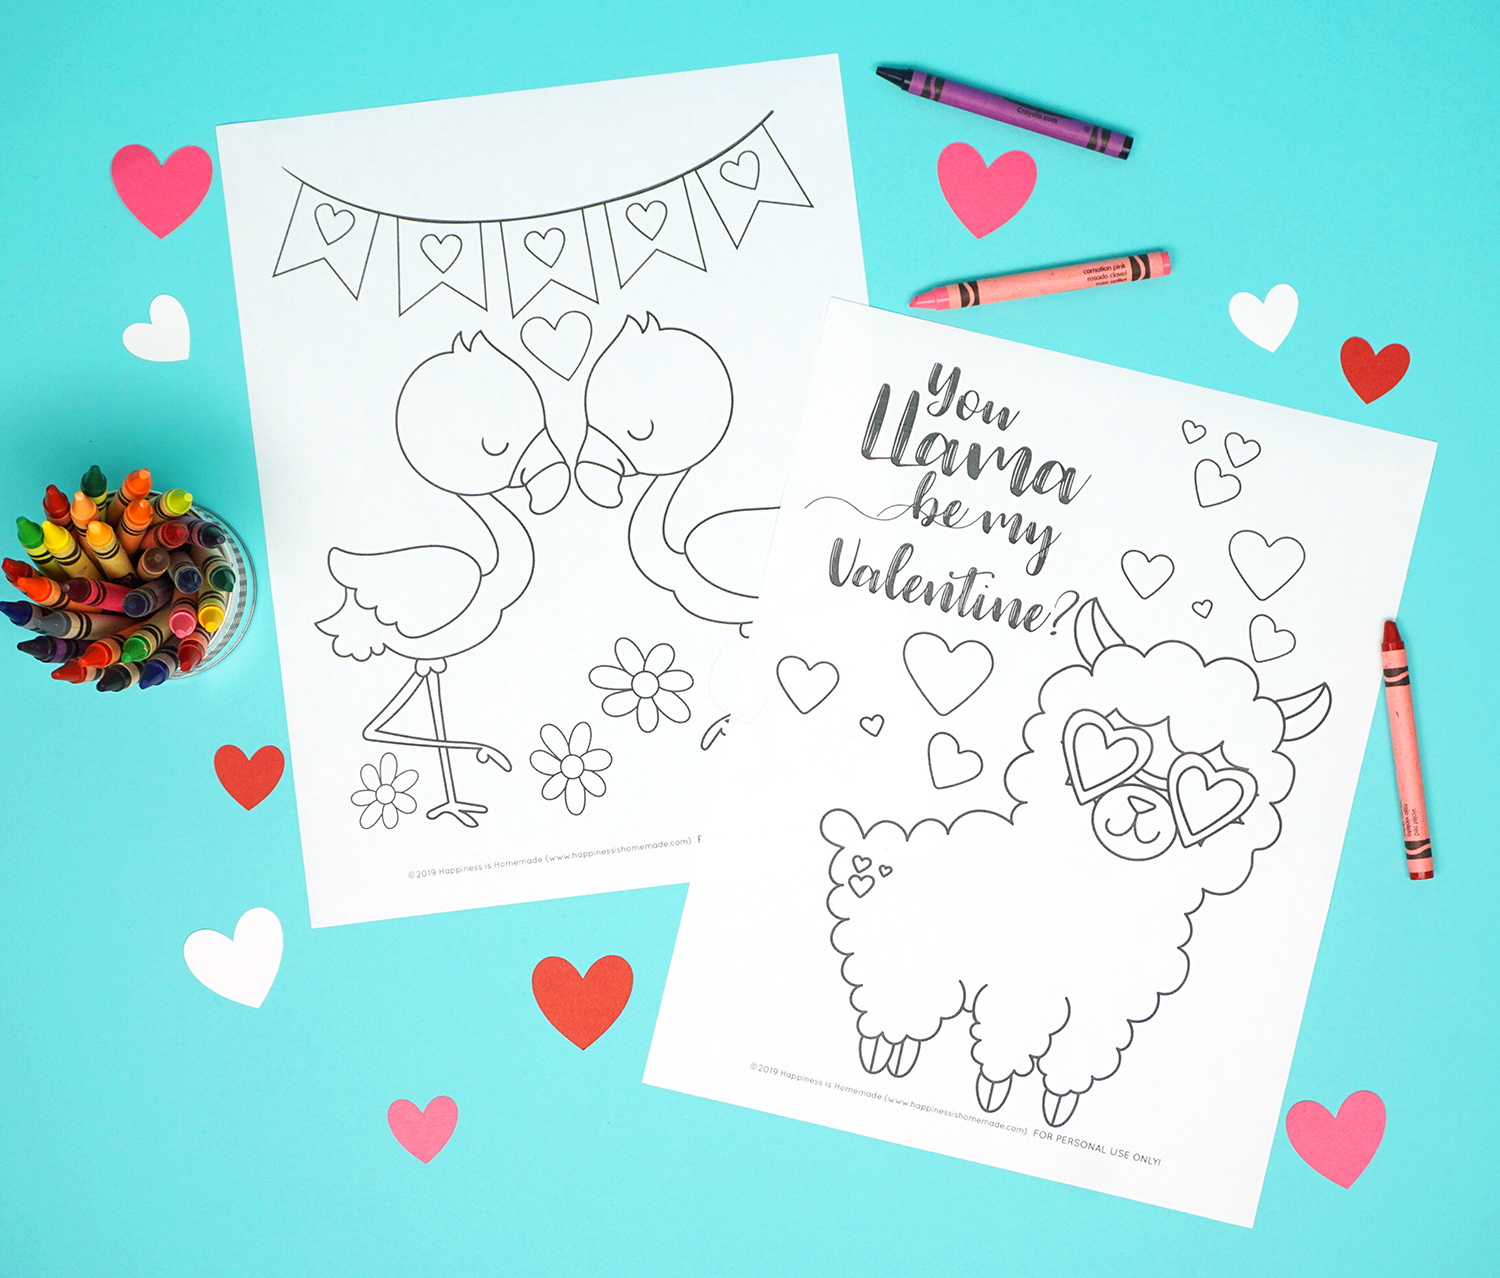 photograph relating to Printable Valentines Color Pages identified as Printable Valentine Coloring Web pages - Joy is Handmade